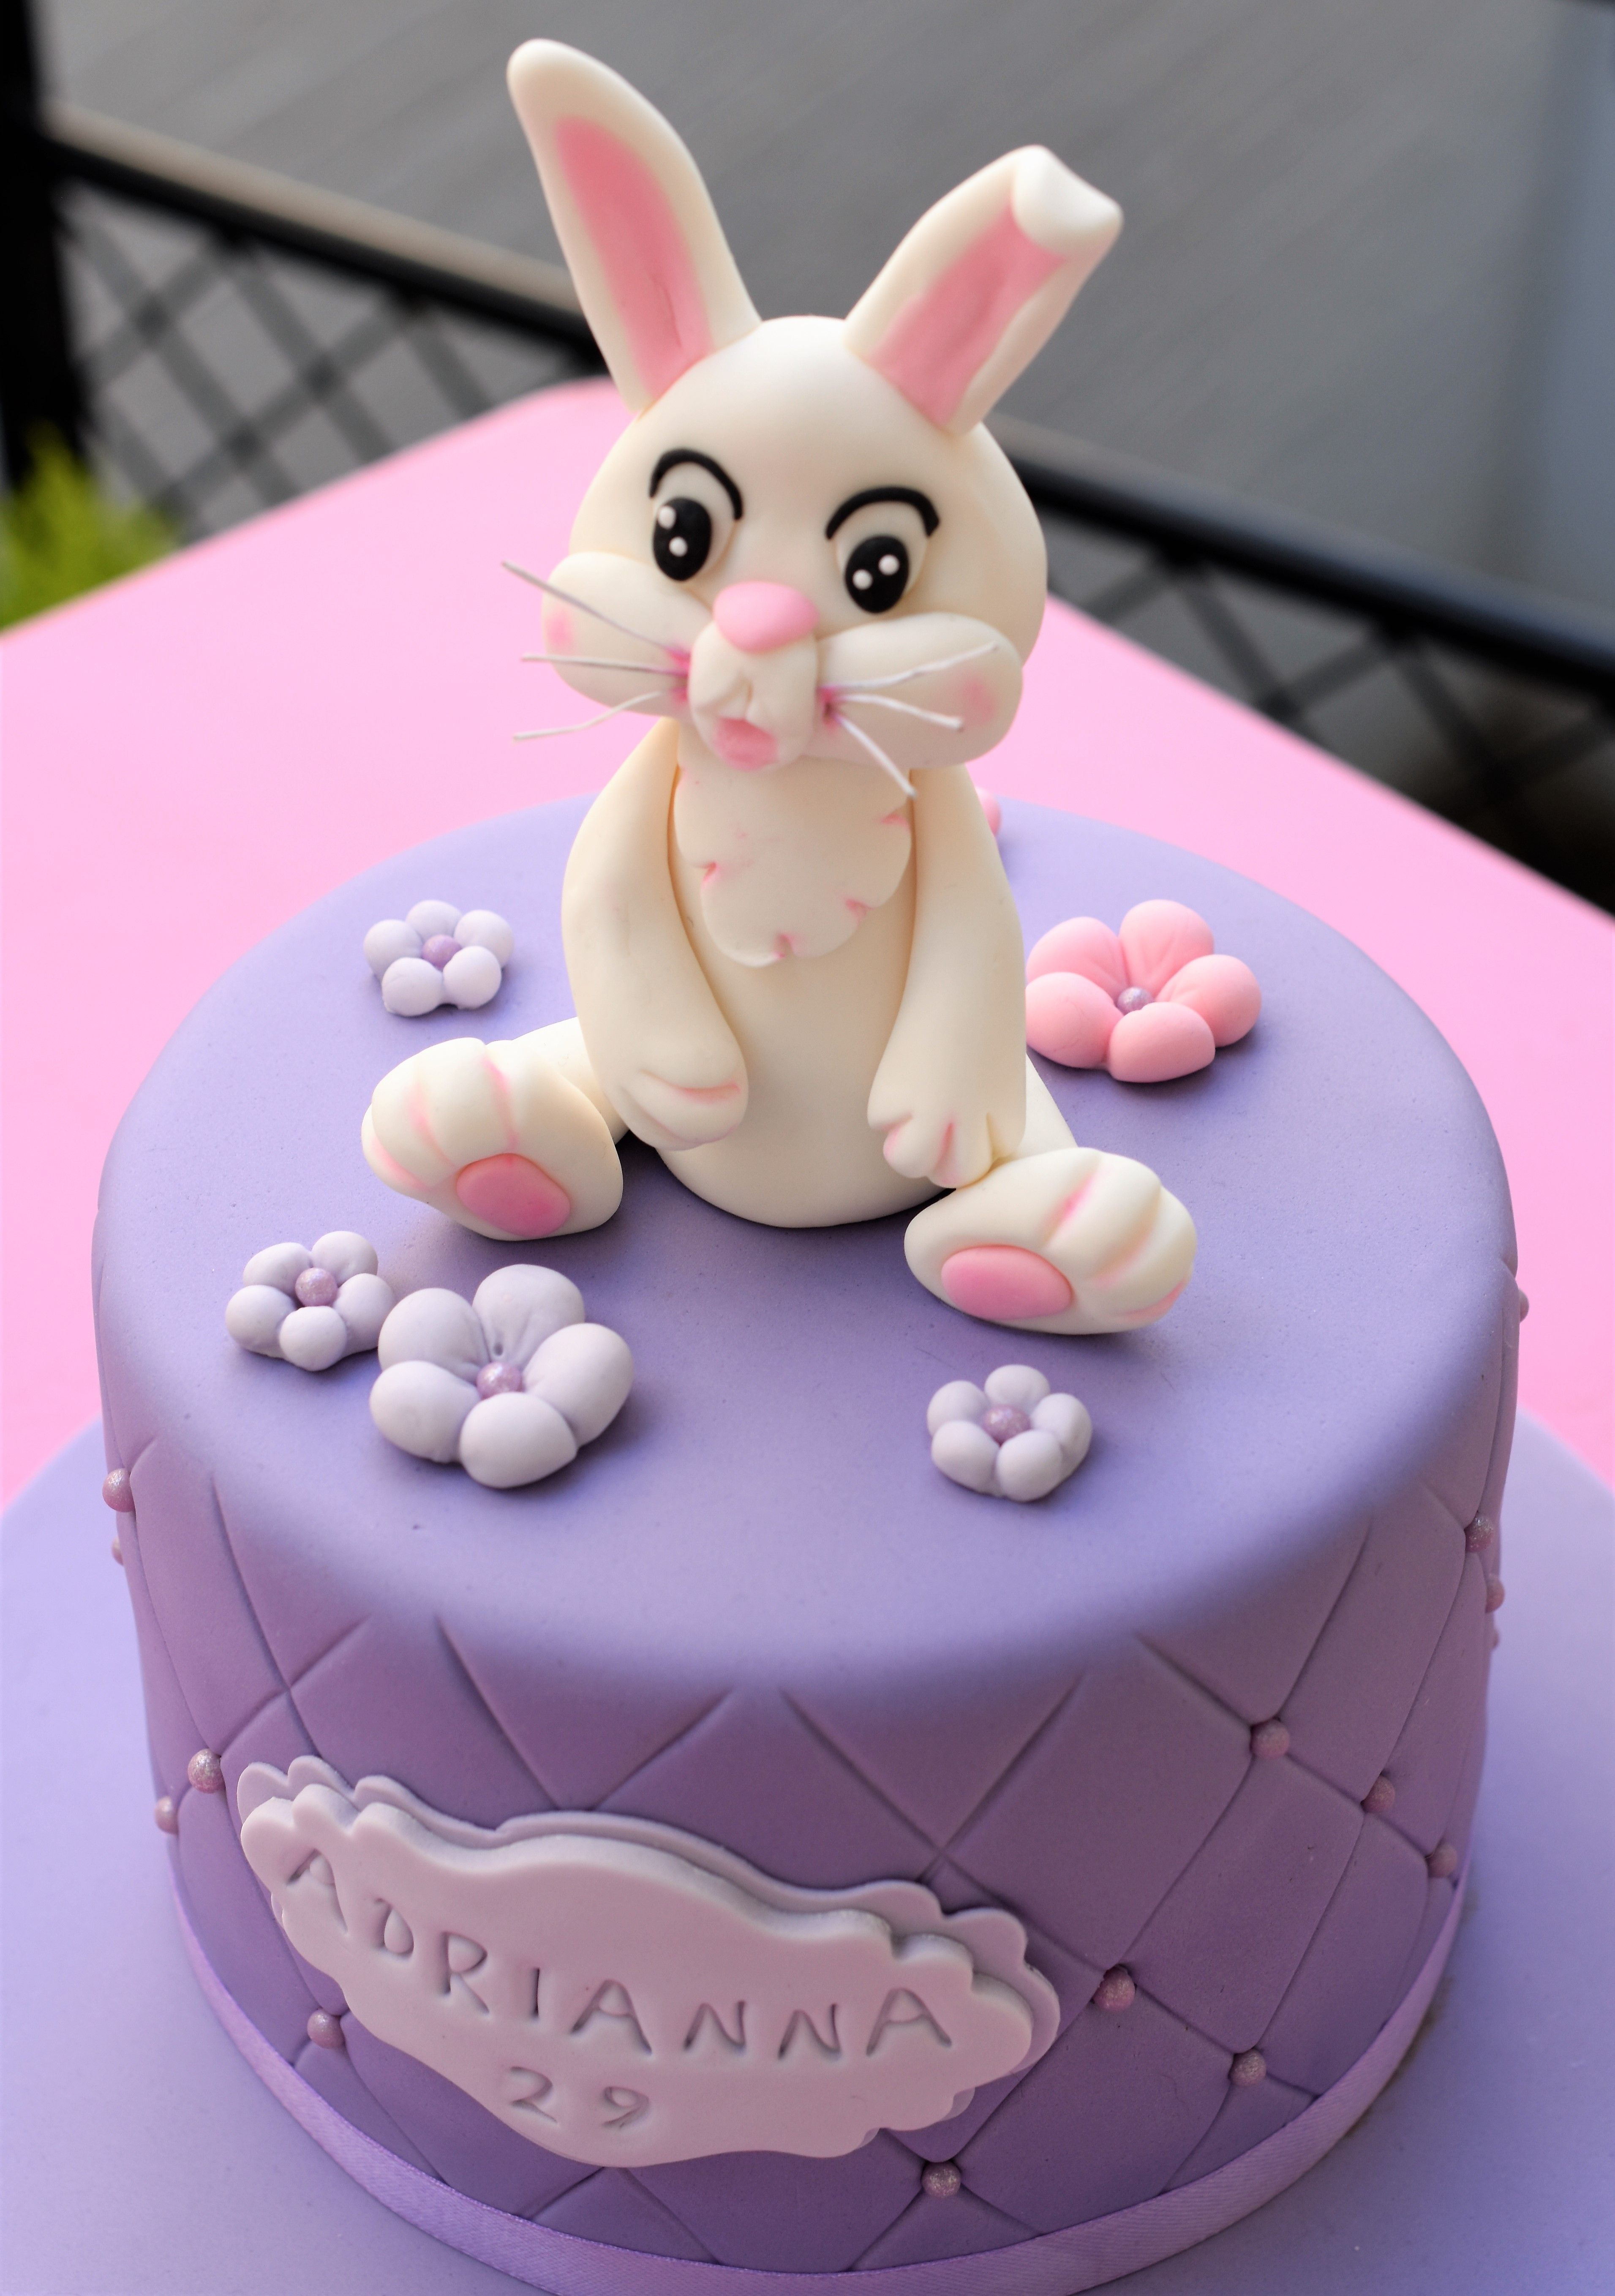 Brilliant Bunny Birthday Cake From Patricia Creative Cakes Brussels Birthday Cards Printable Riciscafe Filternl